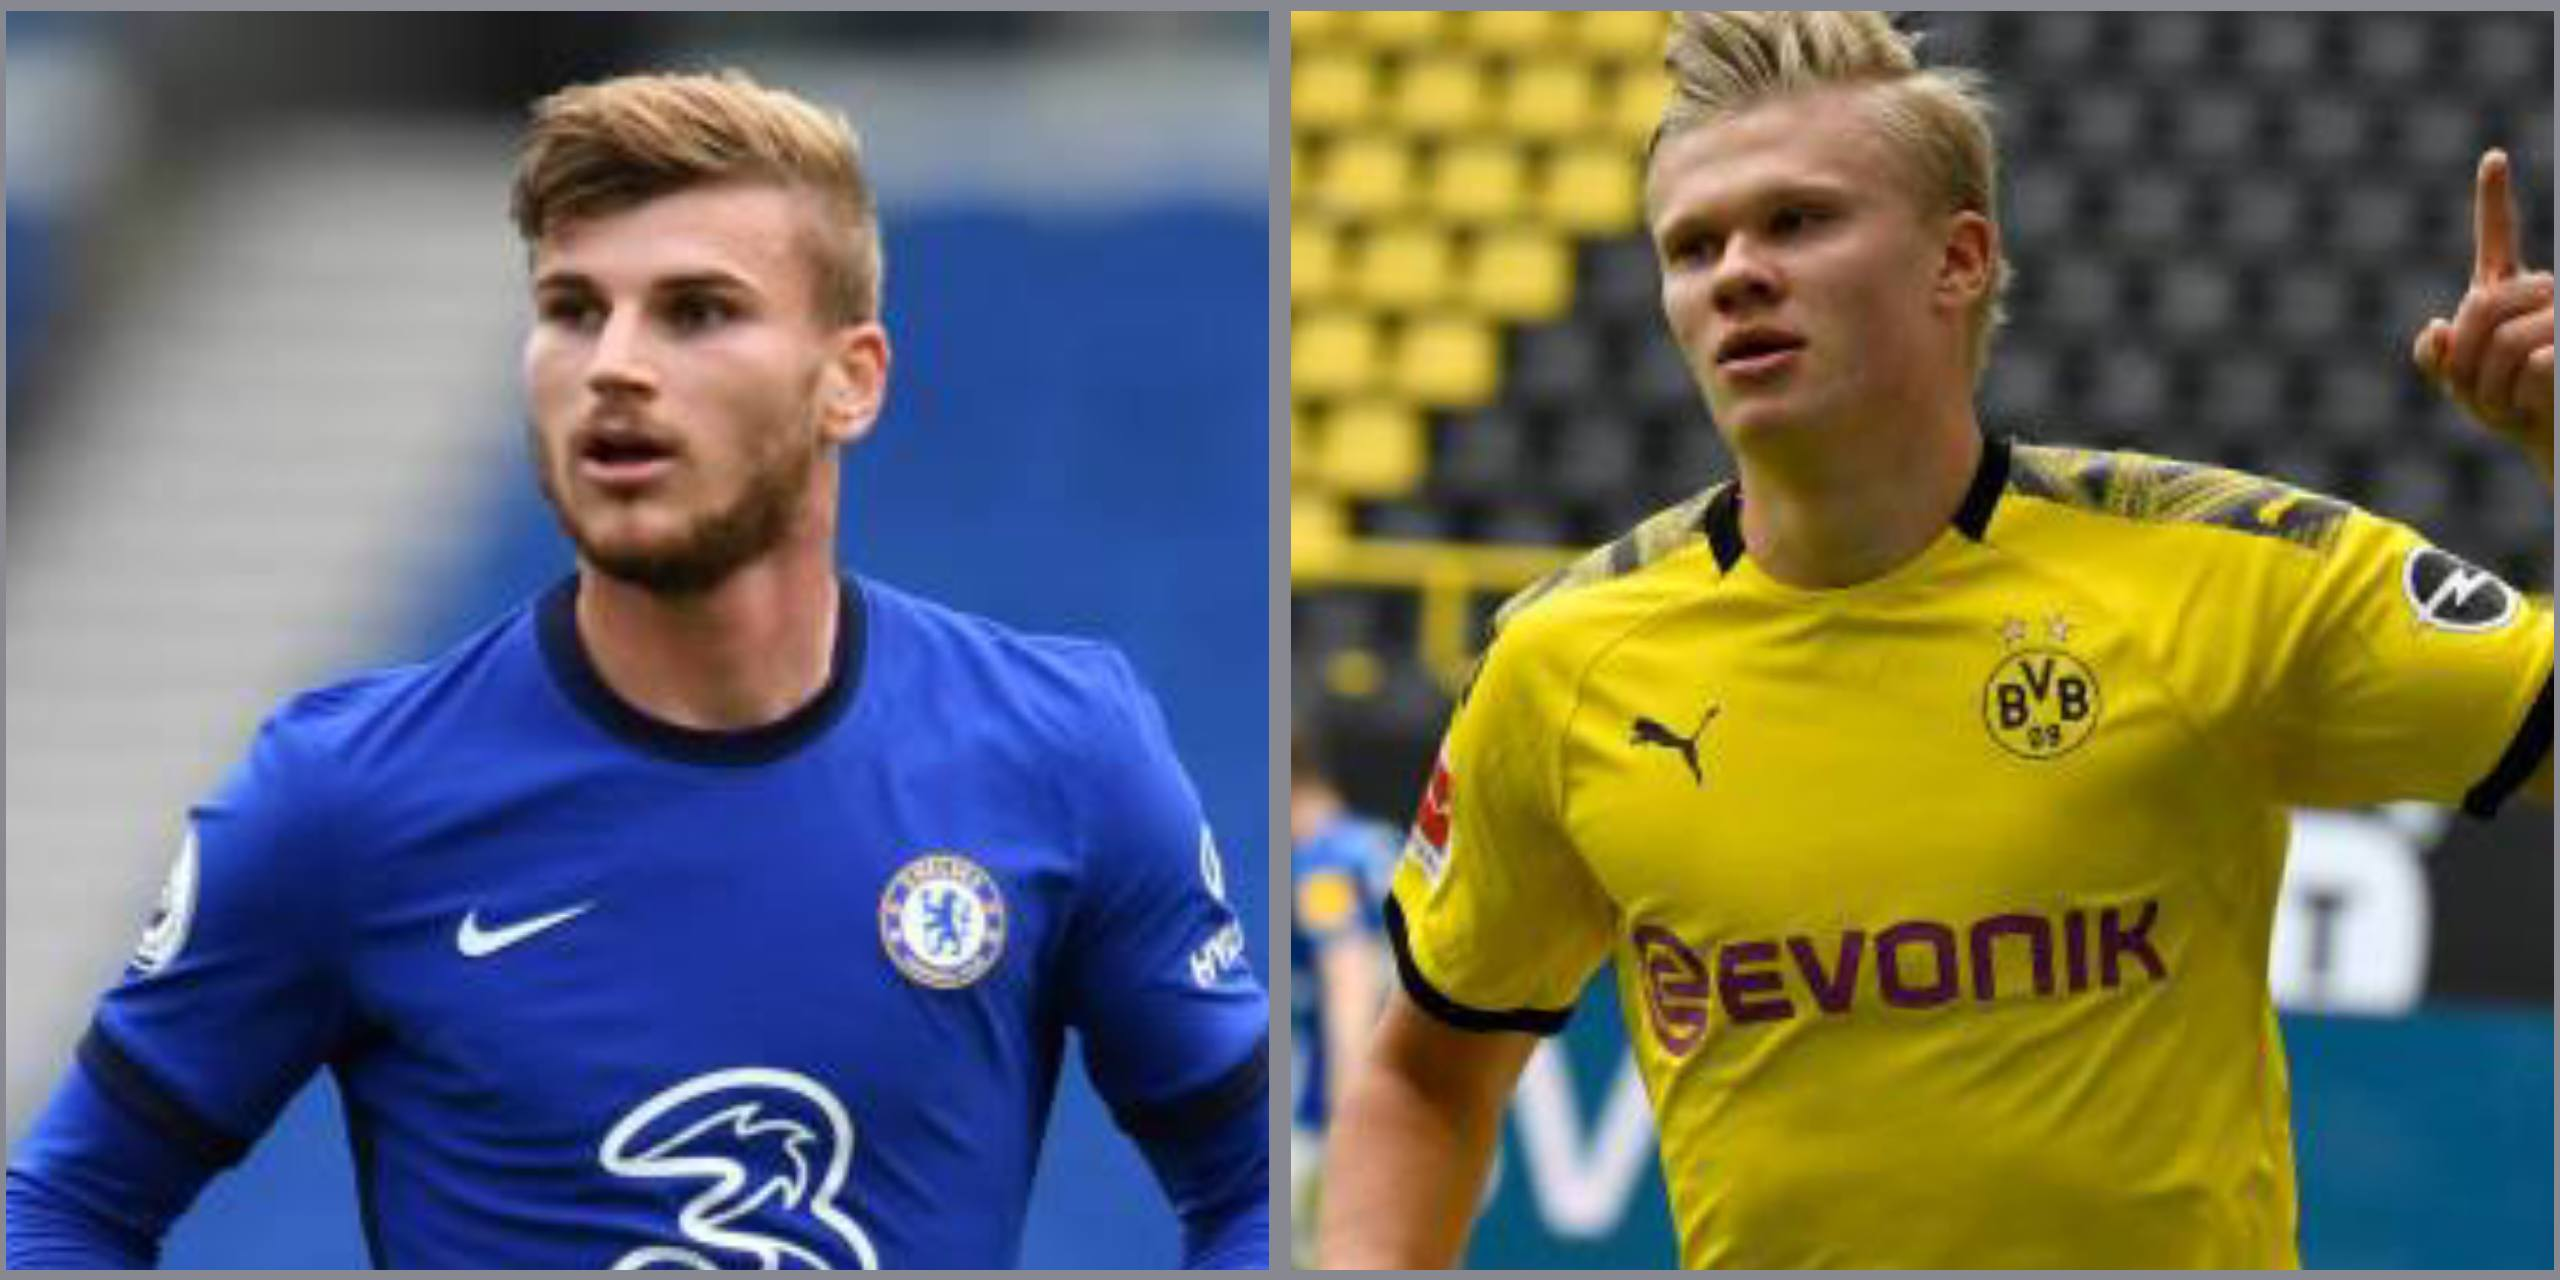 Timo Werner takes stance on Chelsea future amid Erling Haaland transfer talks 1 Sportelo